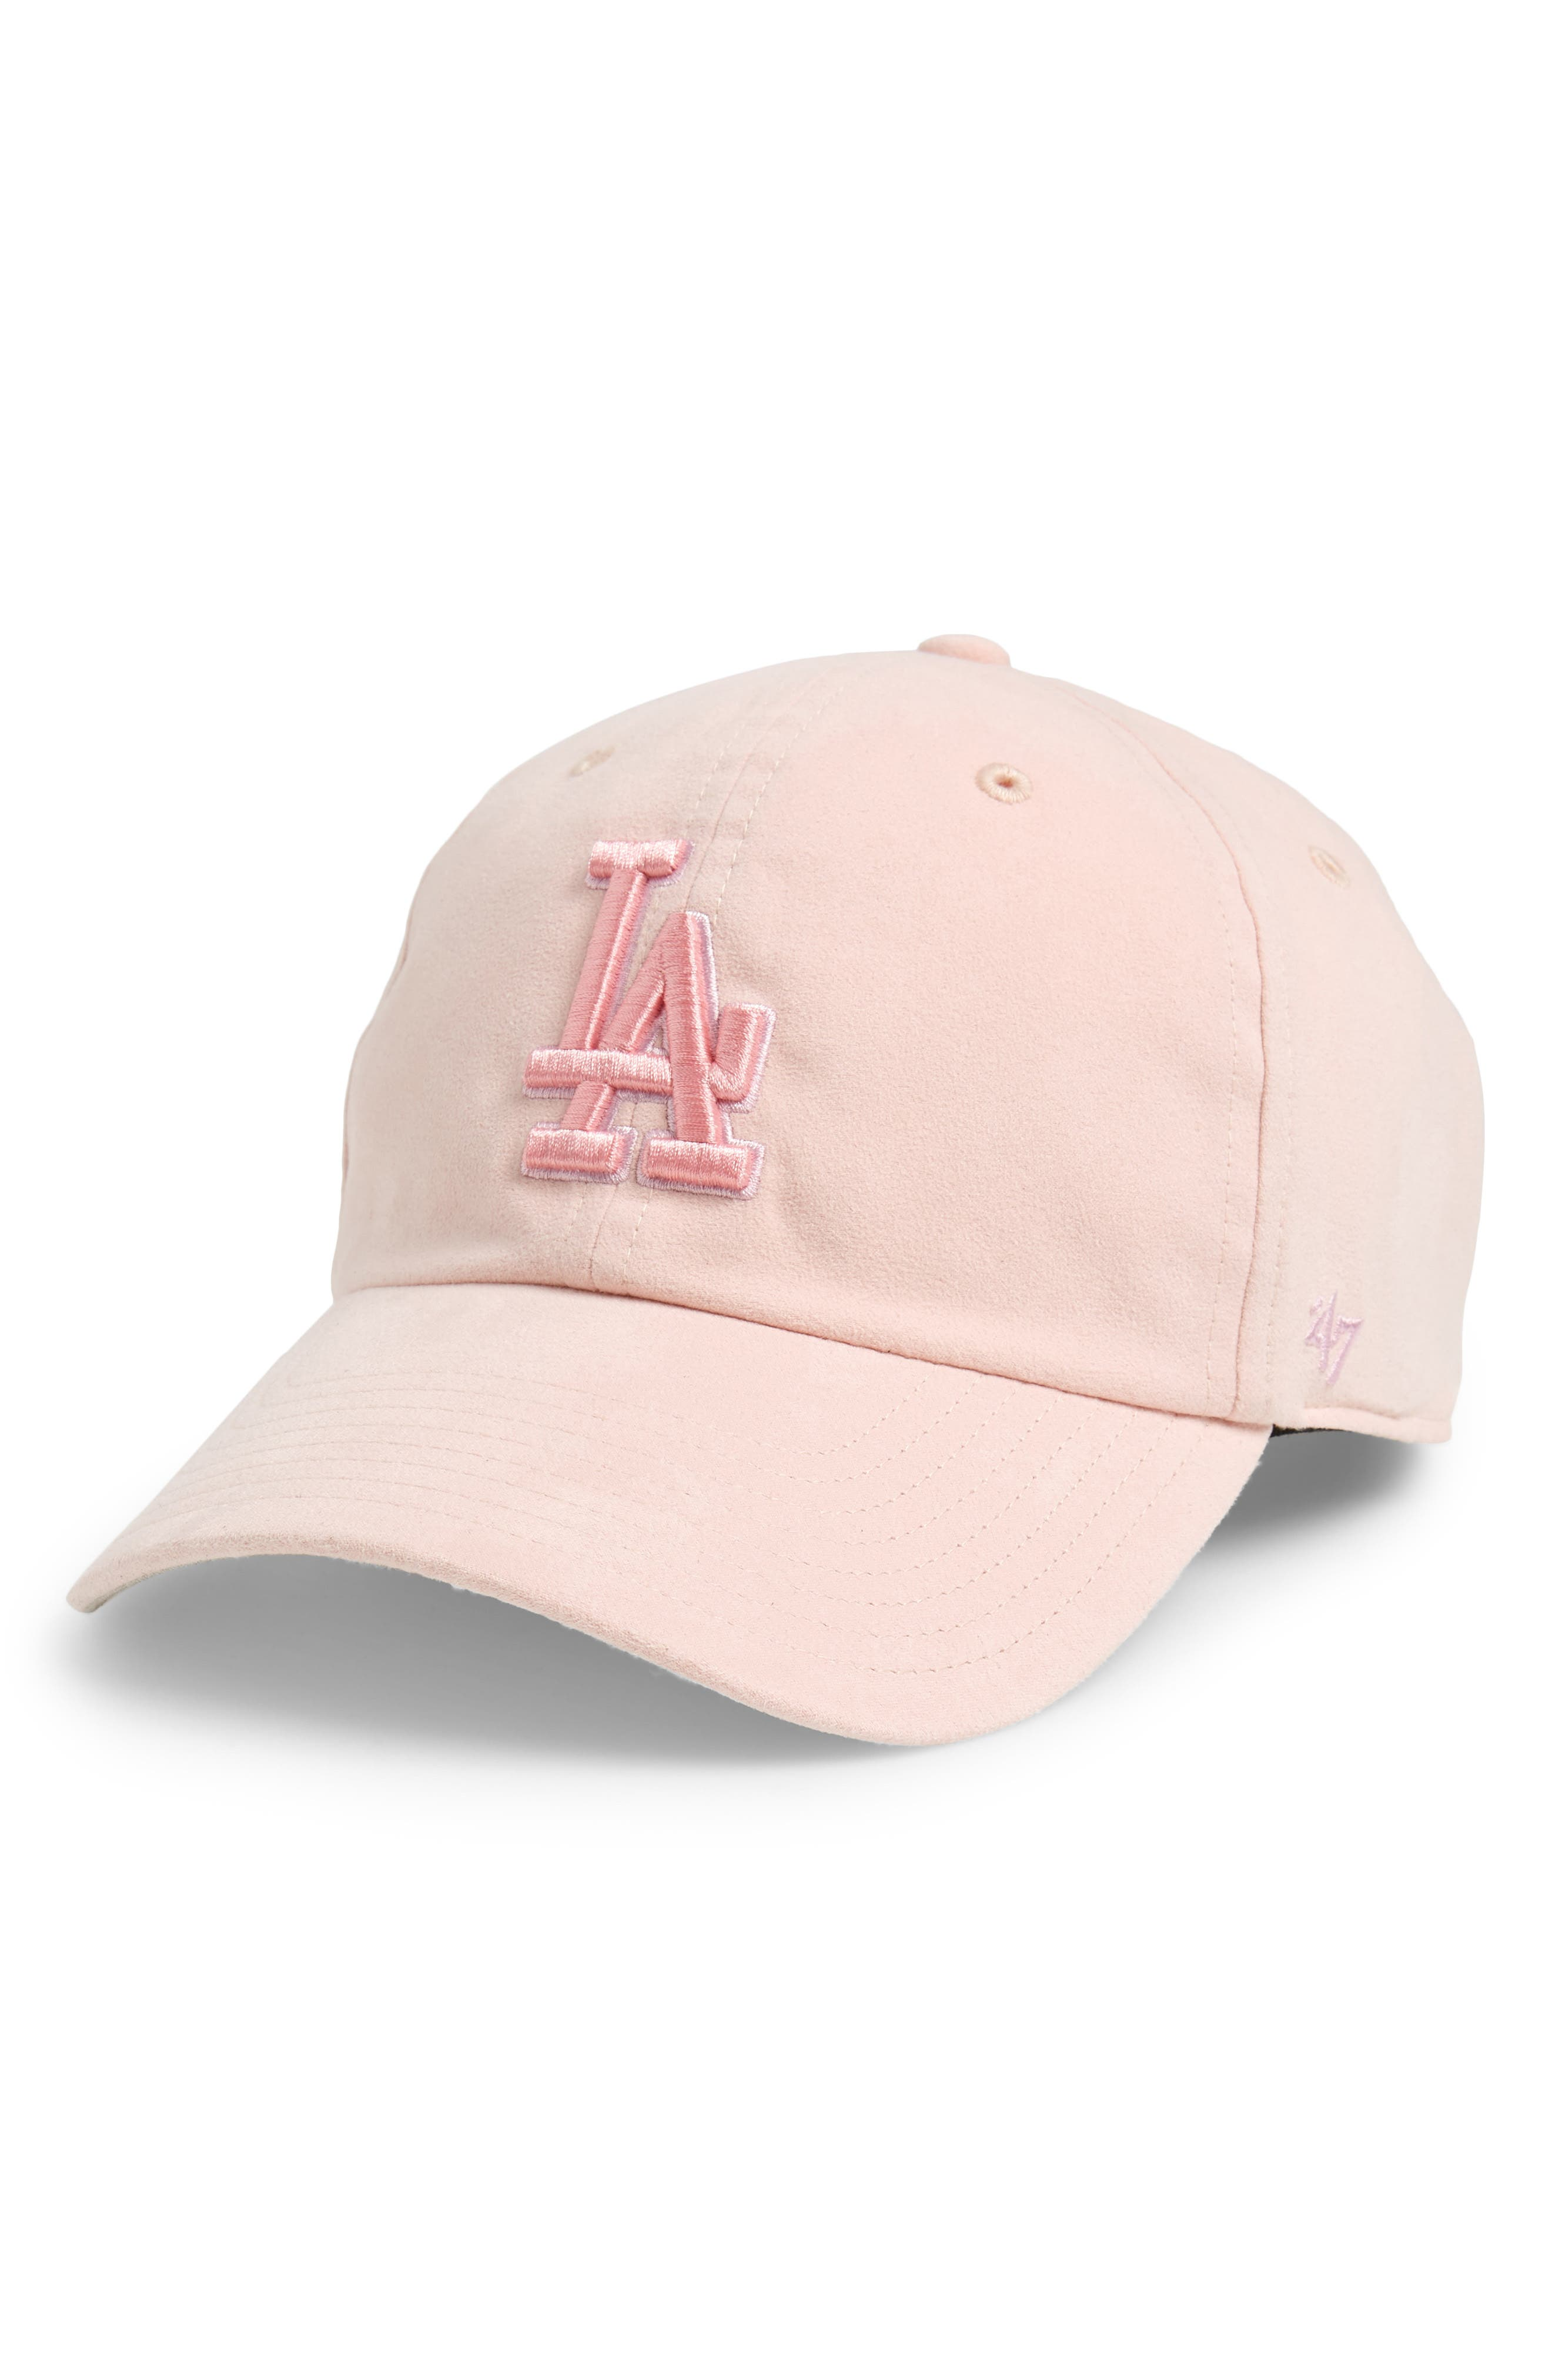 Ultrabasic Clean Up Los Angeles Dodgers Baseball Cap,                         Main,                         color, Pink